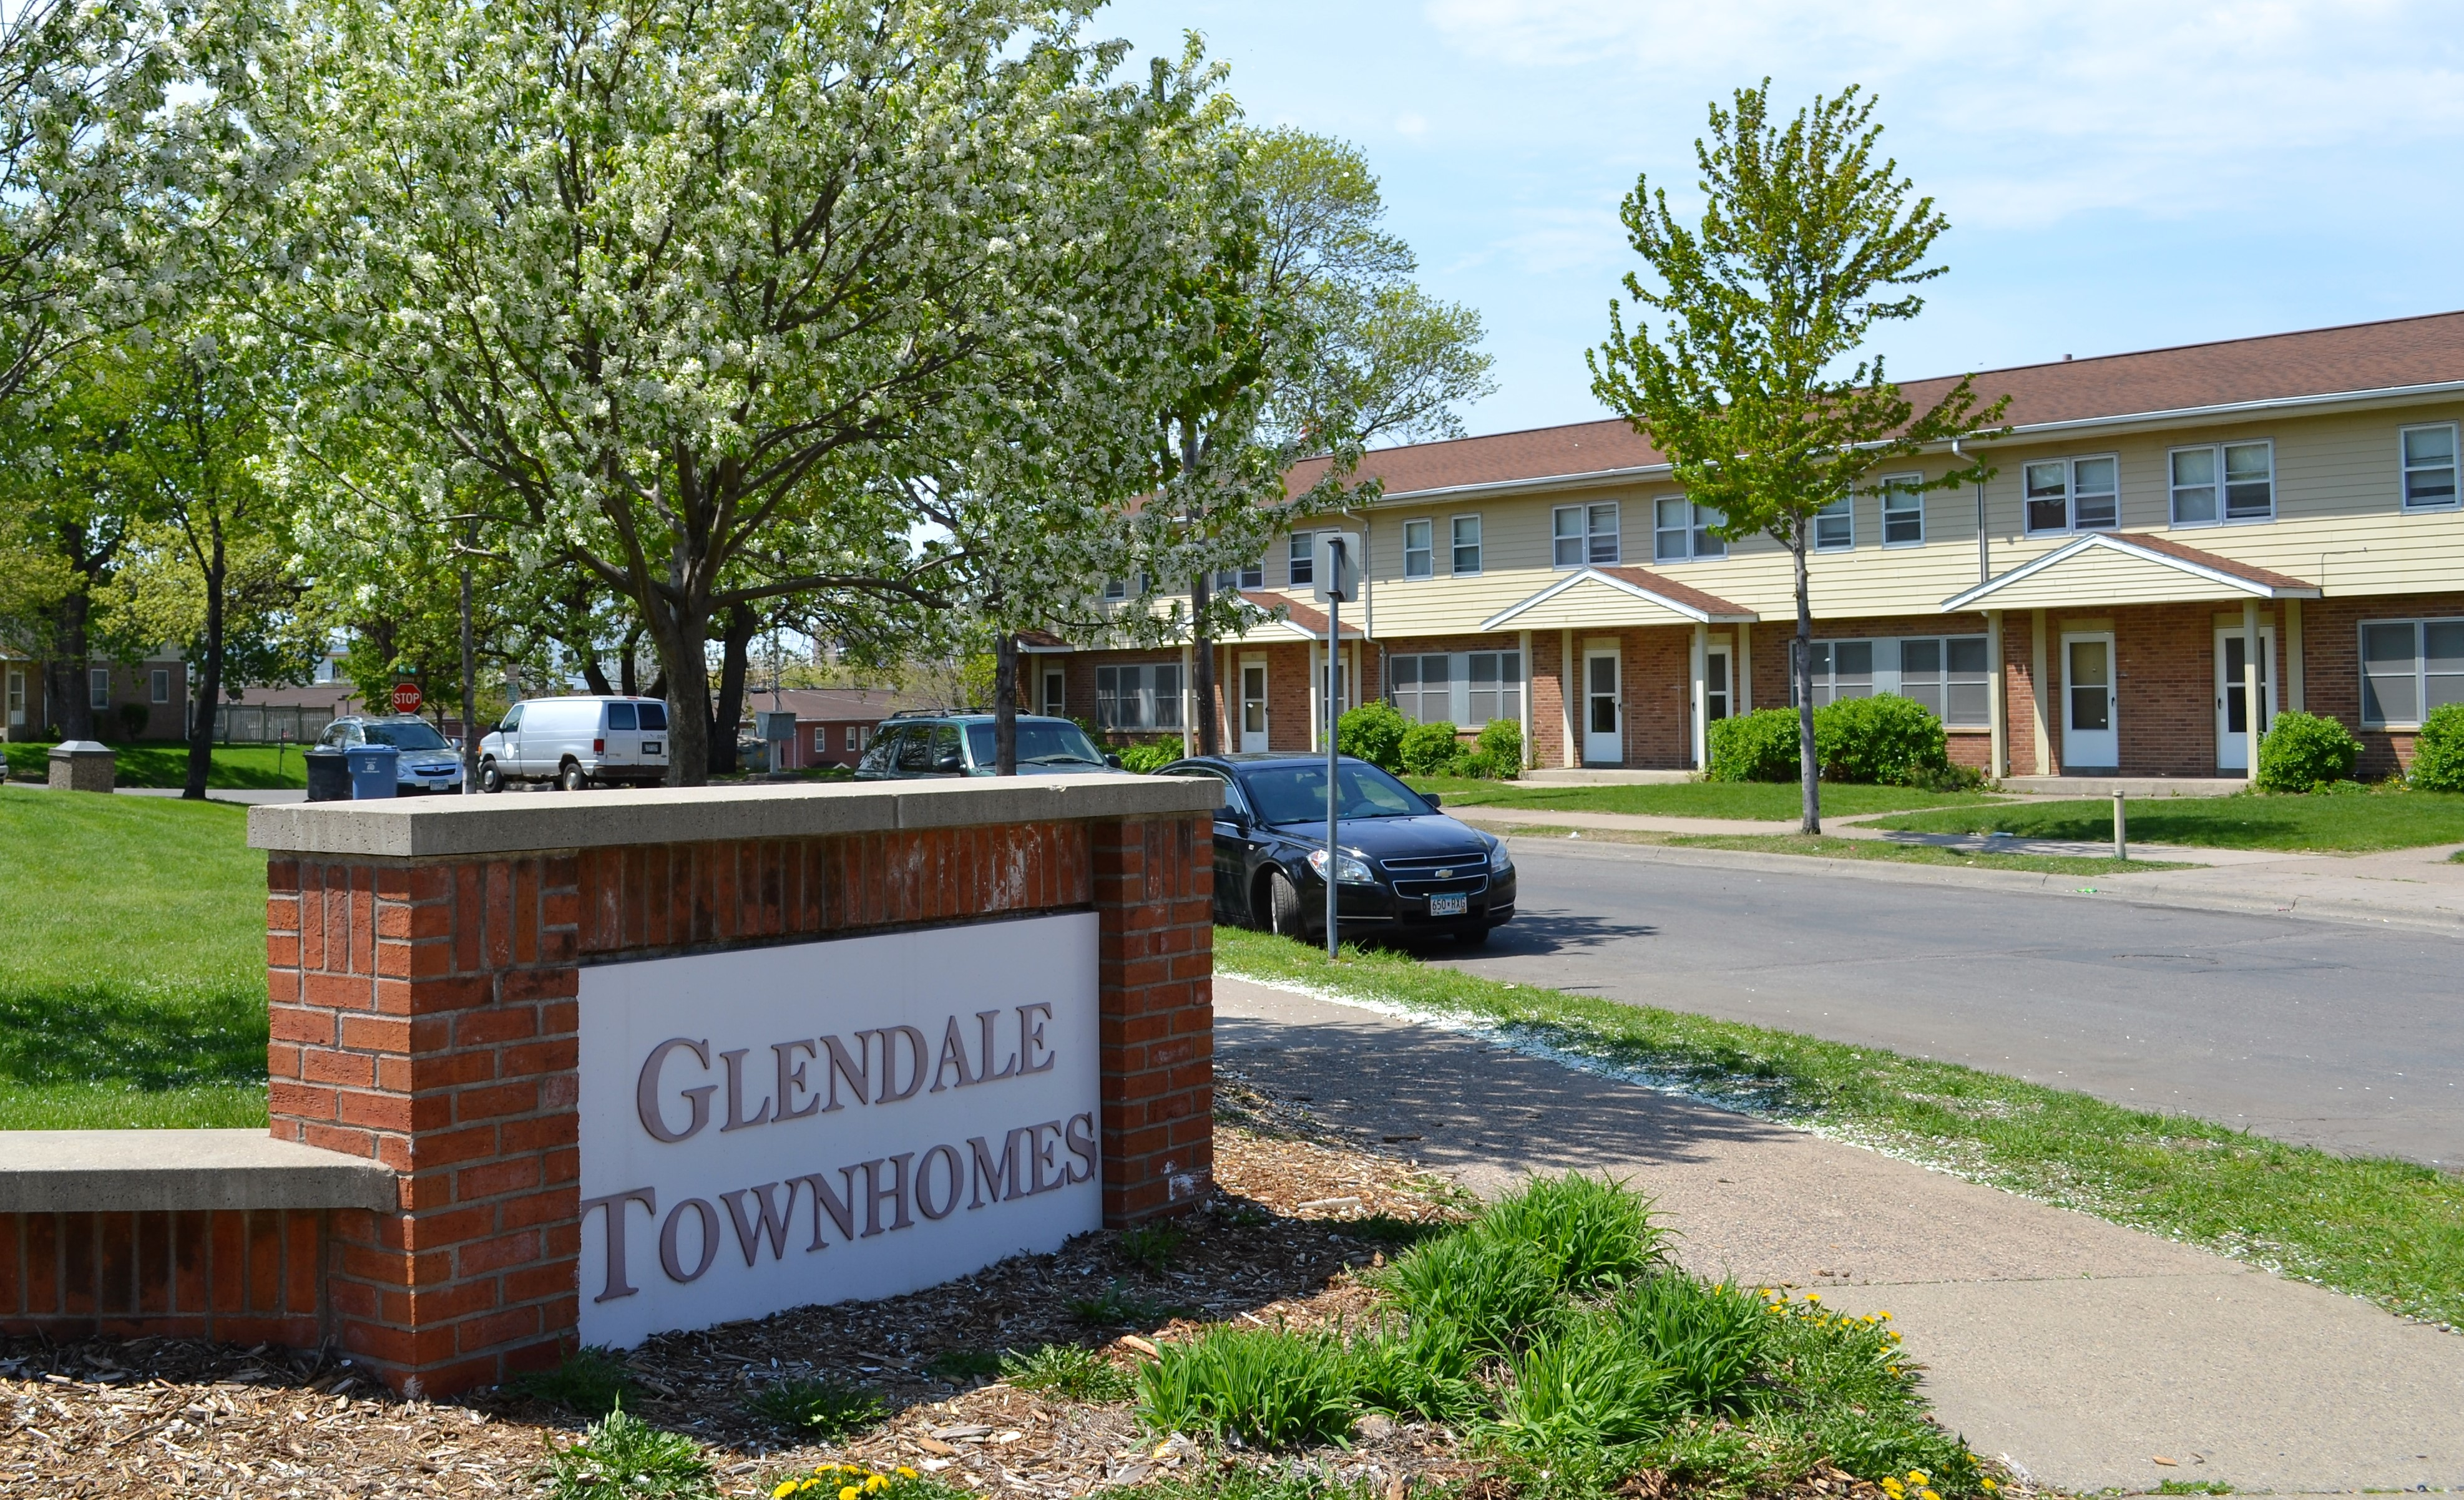 Glendale Townhomes Entrance